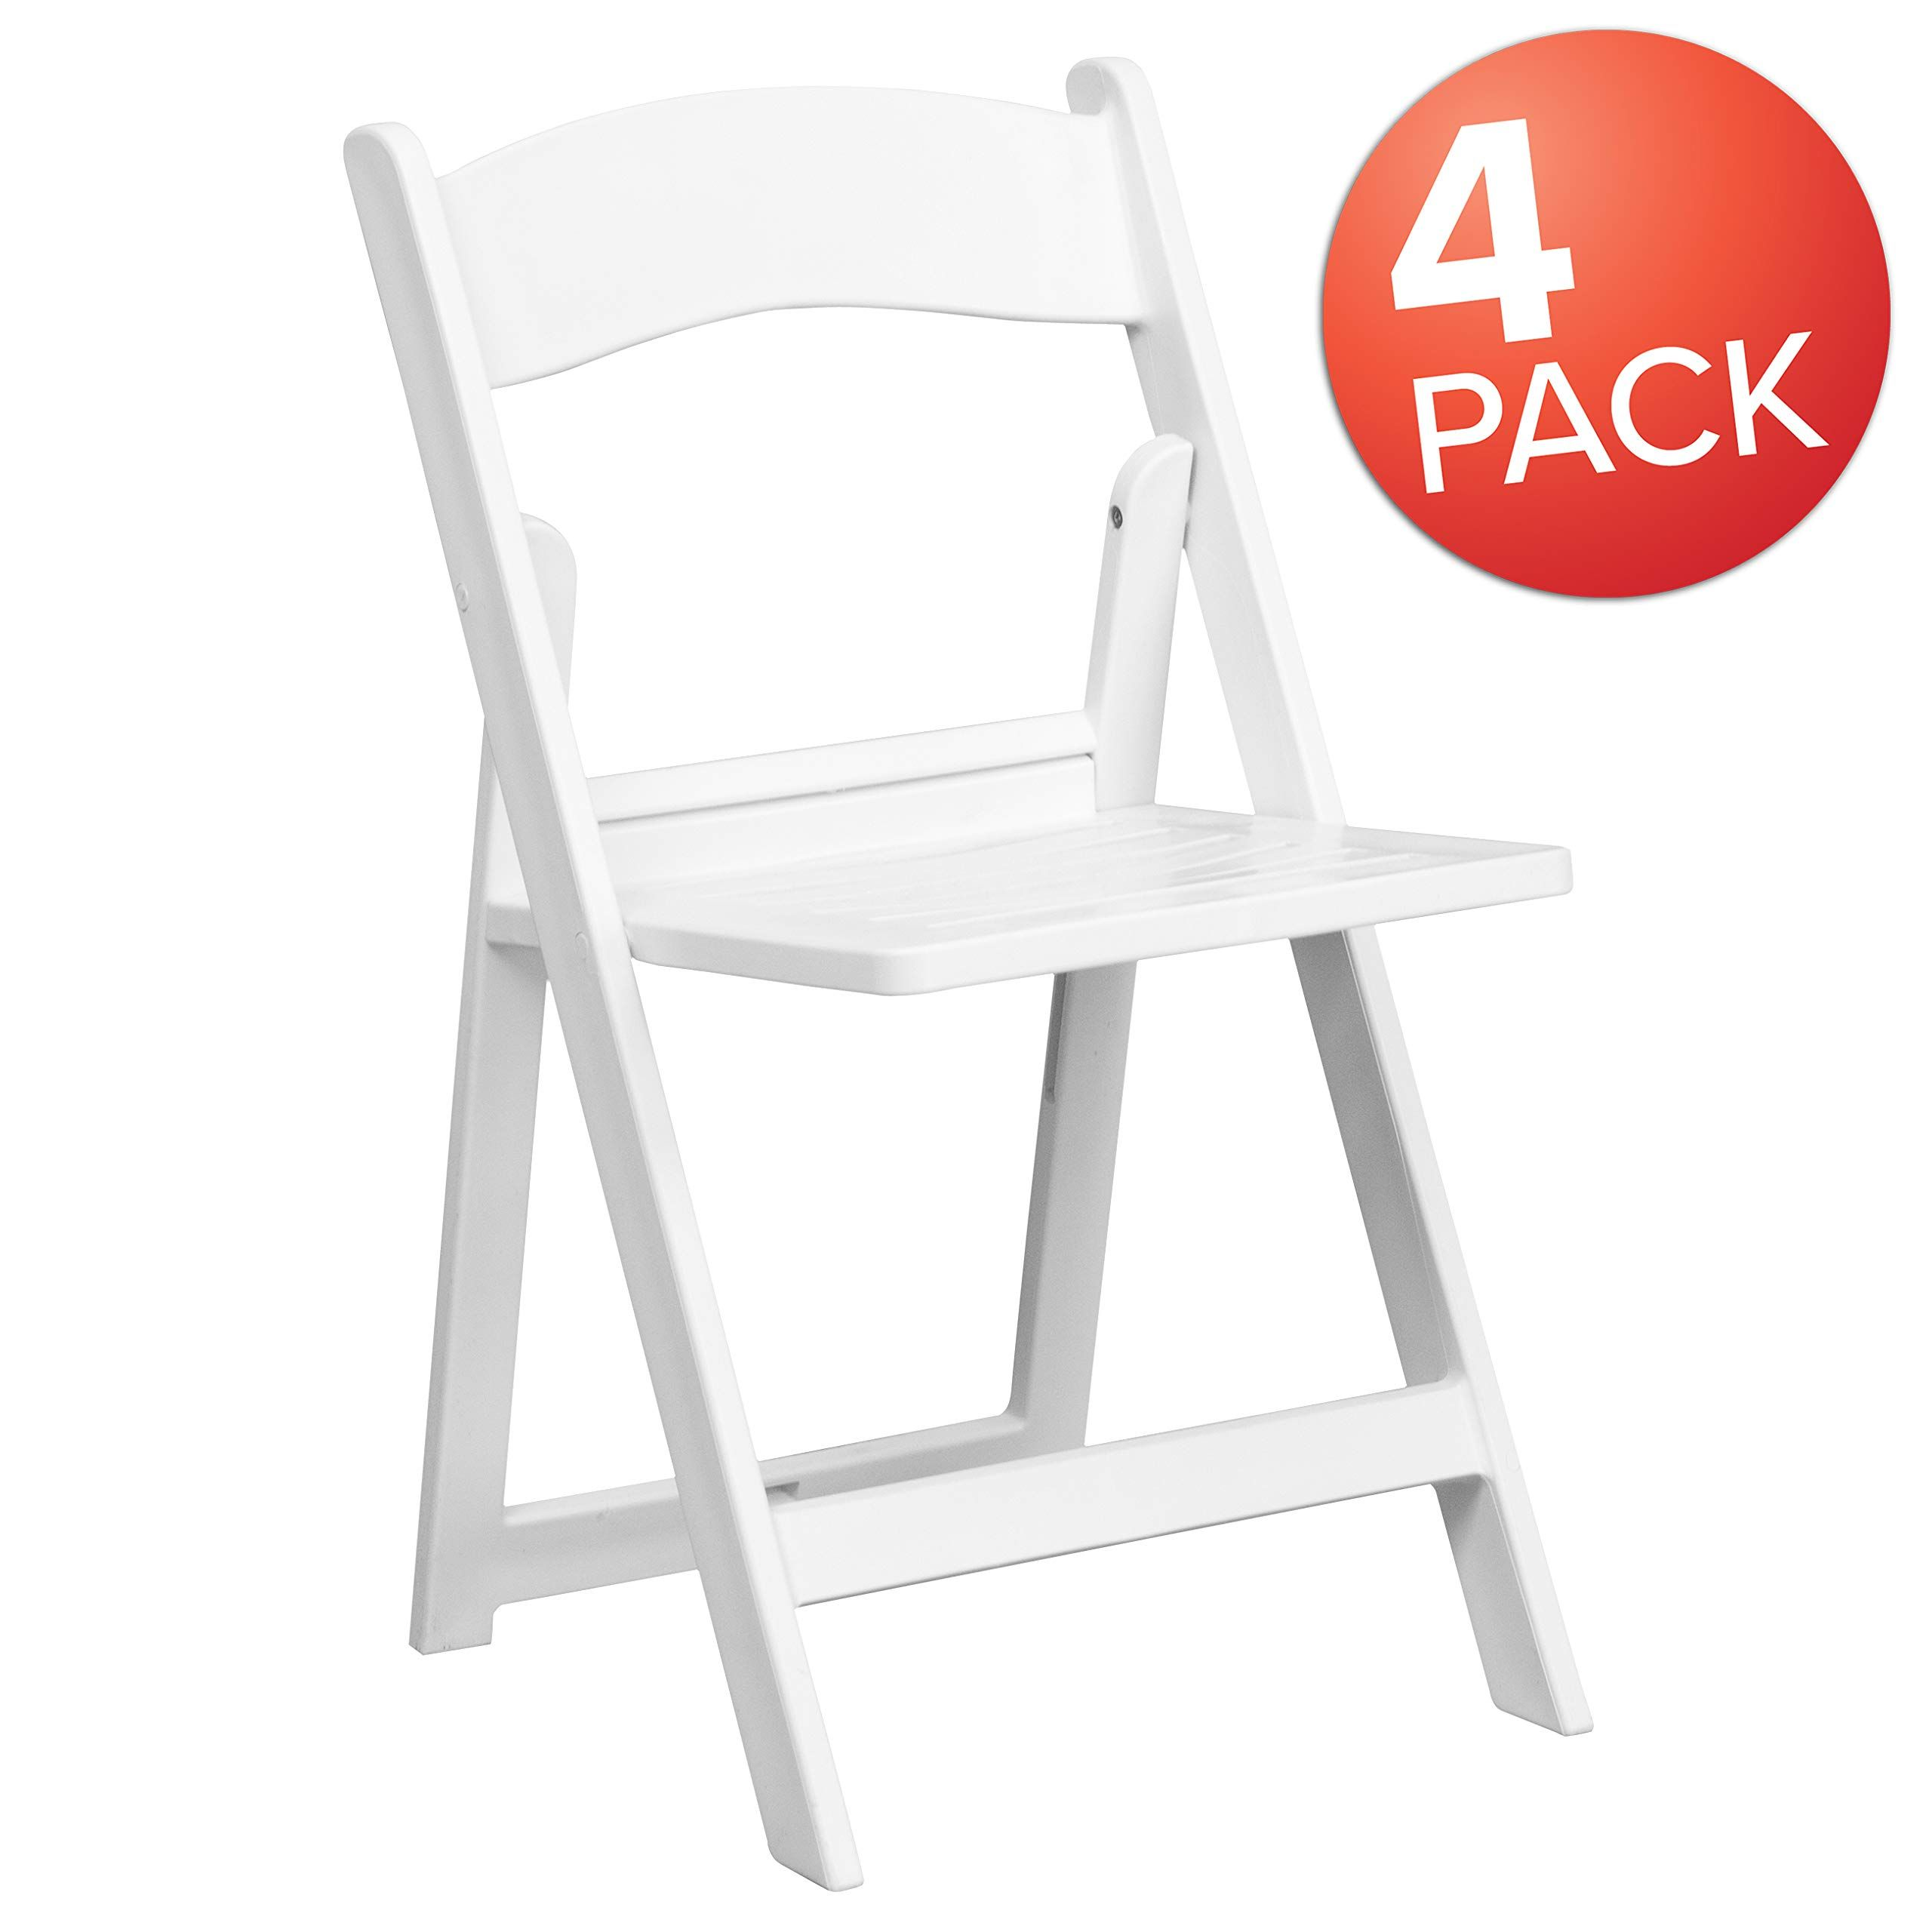 Flash Furniture 4 Pk Hercules Series 1000 Lb Capacity White Resin Folding Chair With Slatted Seat 4 Le L 1 Wh Slat Gg Folding Chair